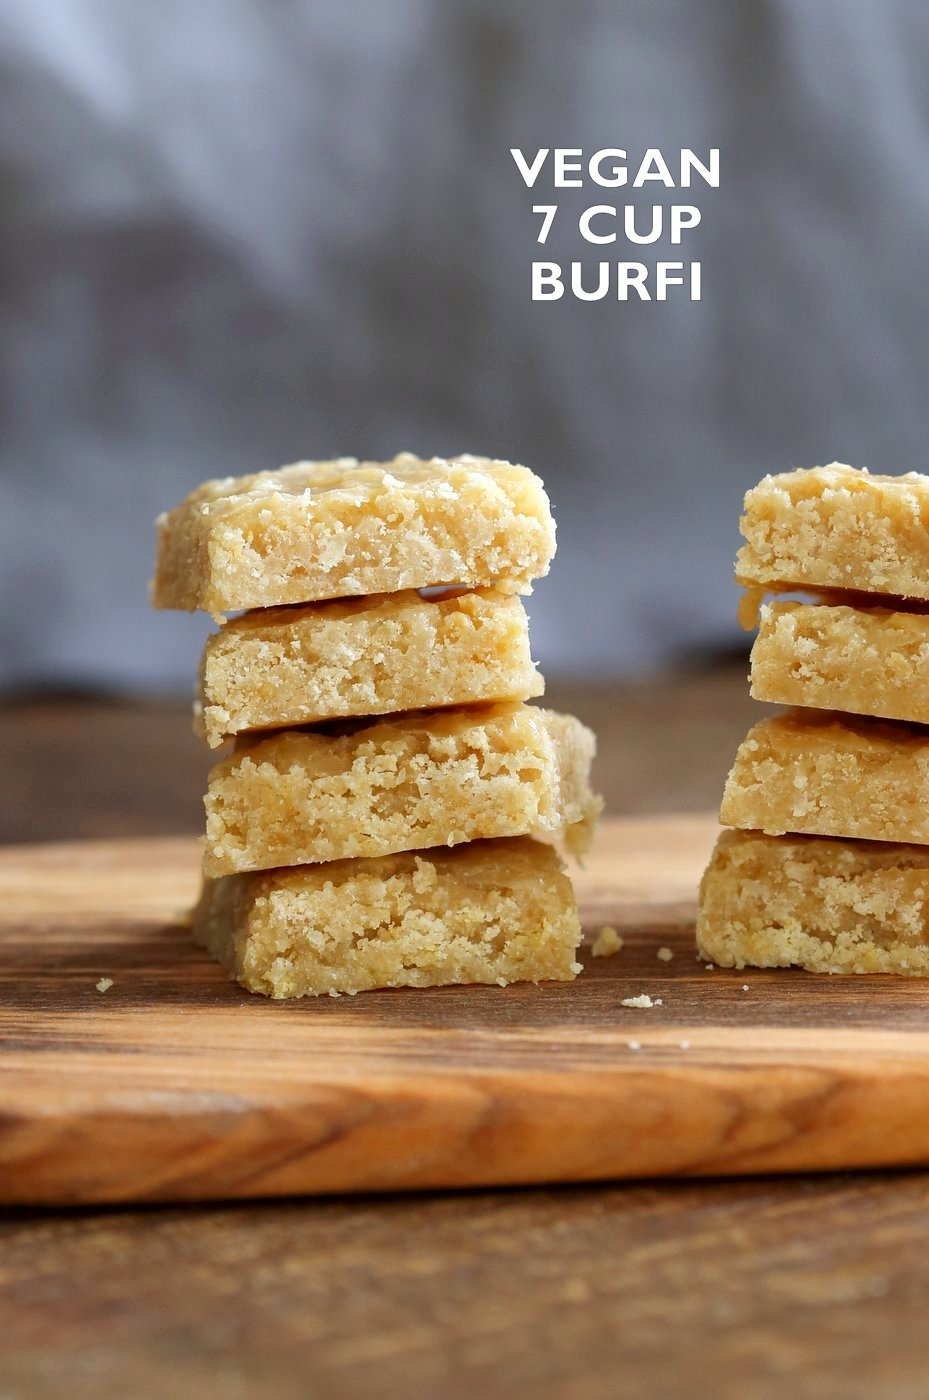 Vegan 7 Cup Burfi - Chickpea flour and Coconut Fudge. 7 cup cake veganized with almond milk and oil. 6 Ingredients! Easy Traditional Indian Sweet 7 cup cake for Diwali or other festivals. Vegan Gluten-free Soy-free Recipe. Nut-free option | VeganRicha.com